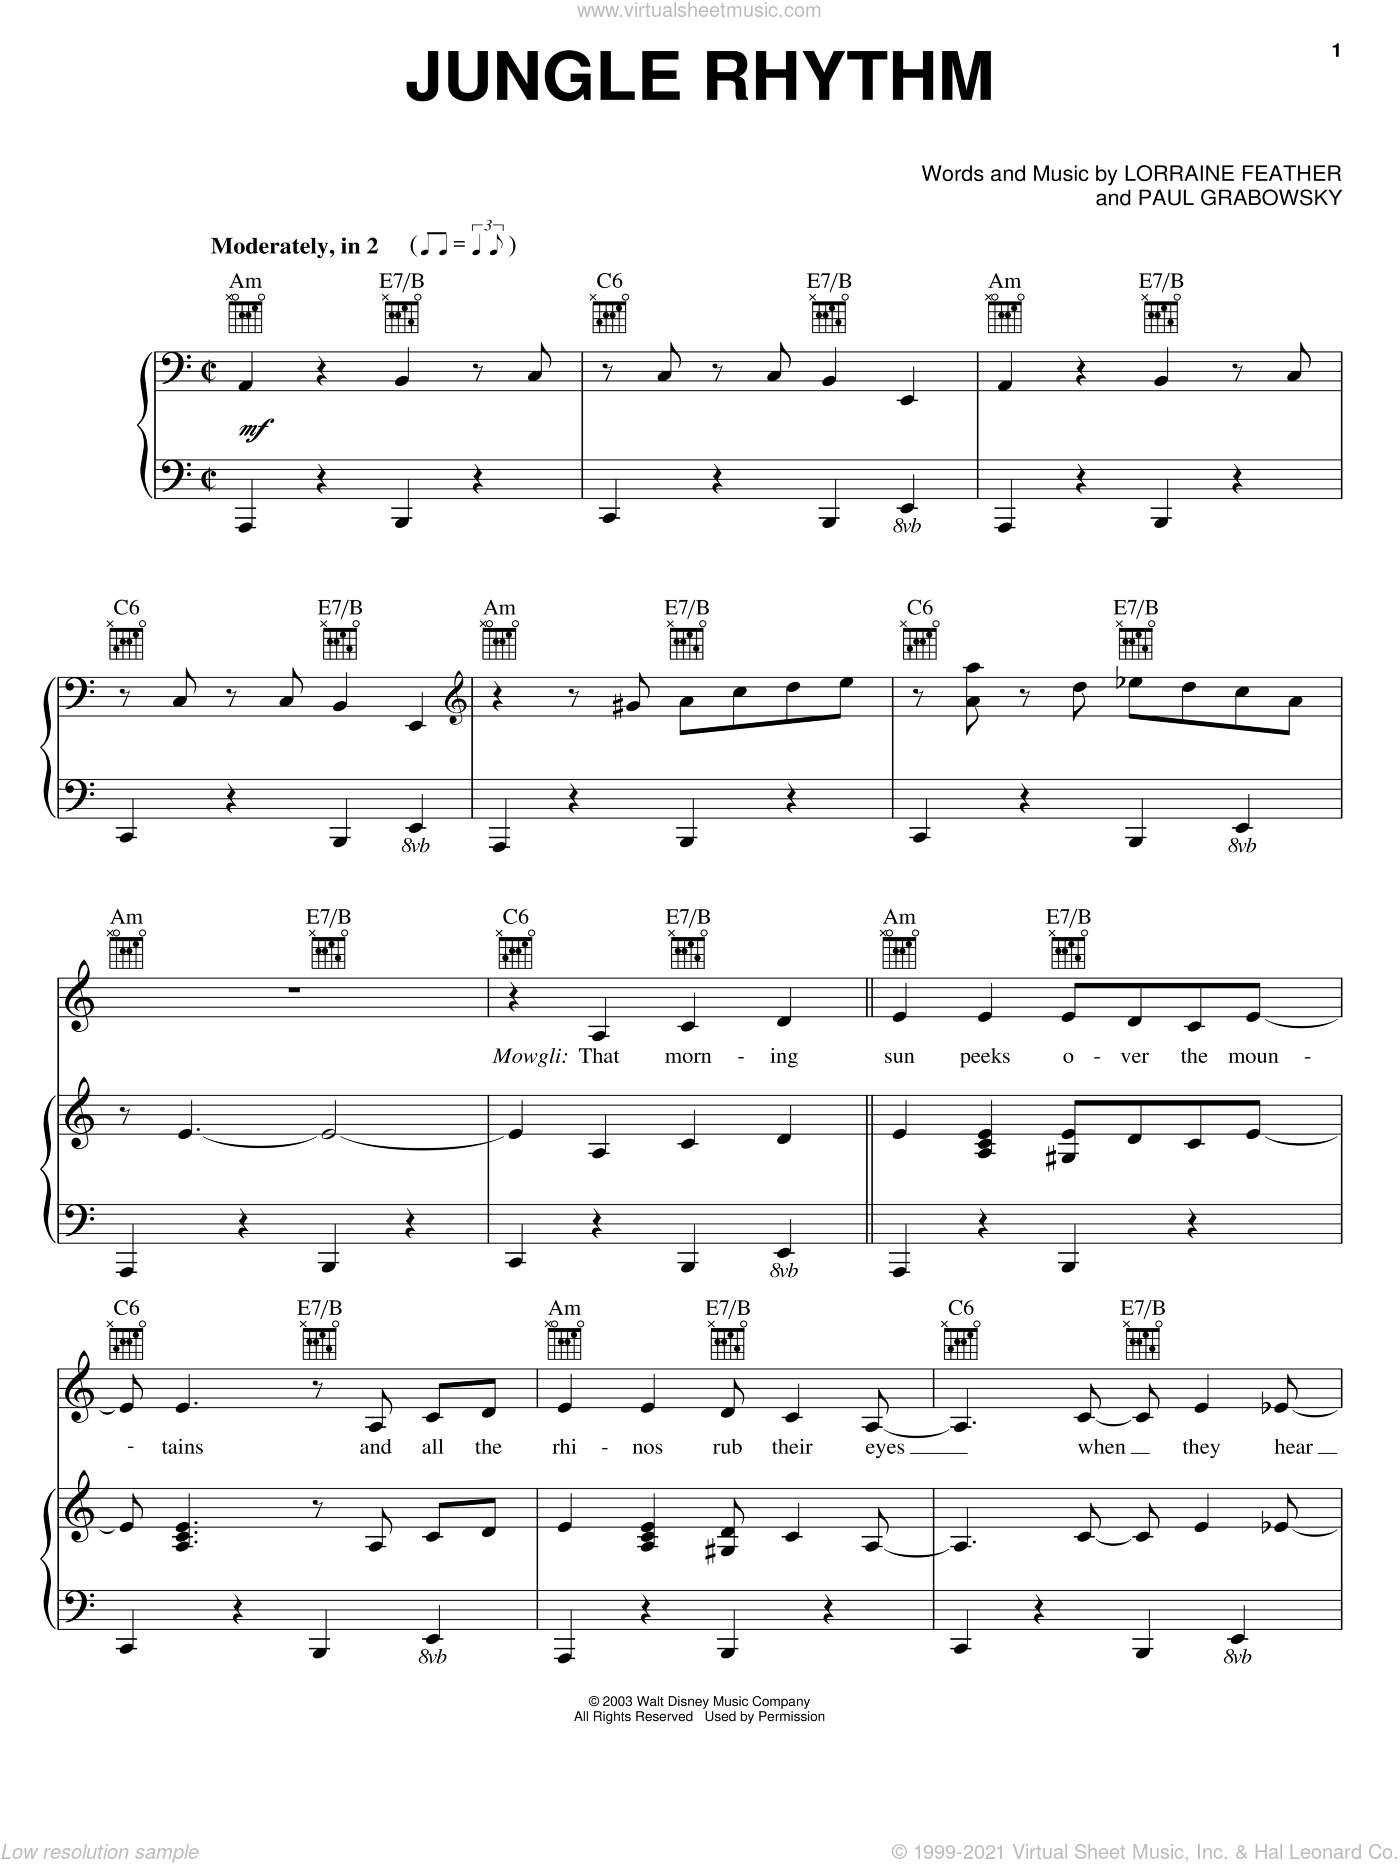 Jungle Rhythm sheet music for voice, piano or guitar by Paul Grabowsky and Lorraine Feather. Score Image Preview.